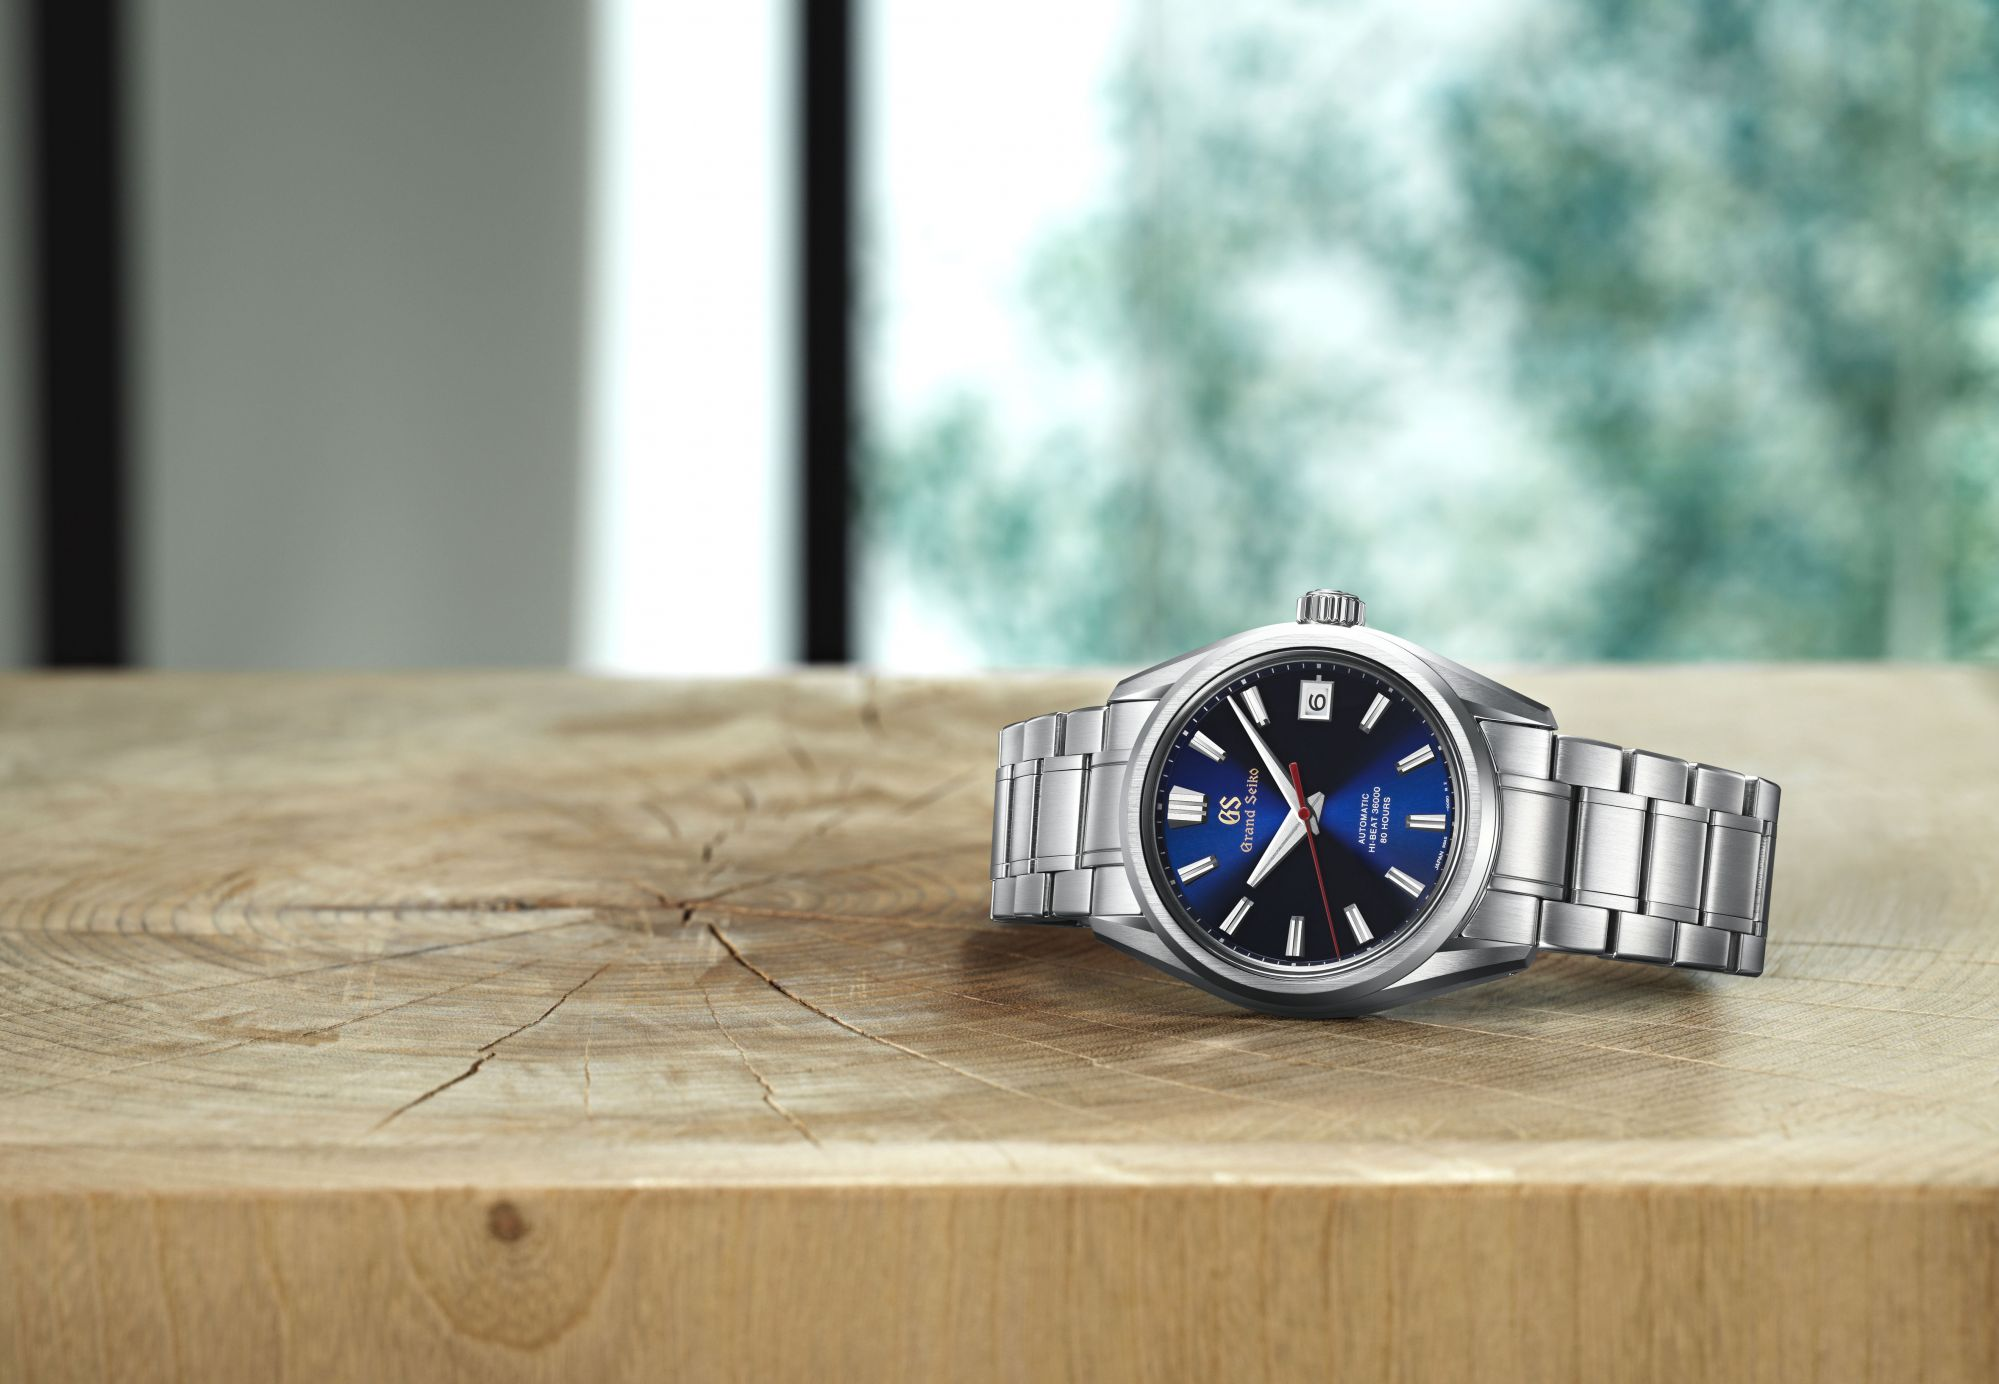 Grand Seiko Releases New Timepieces To Celebrate Its 60th Anniversary